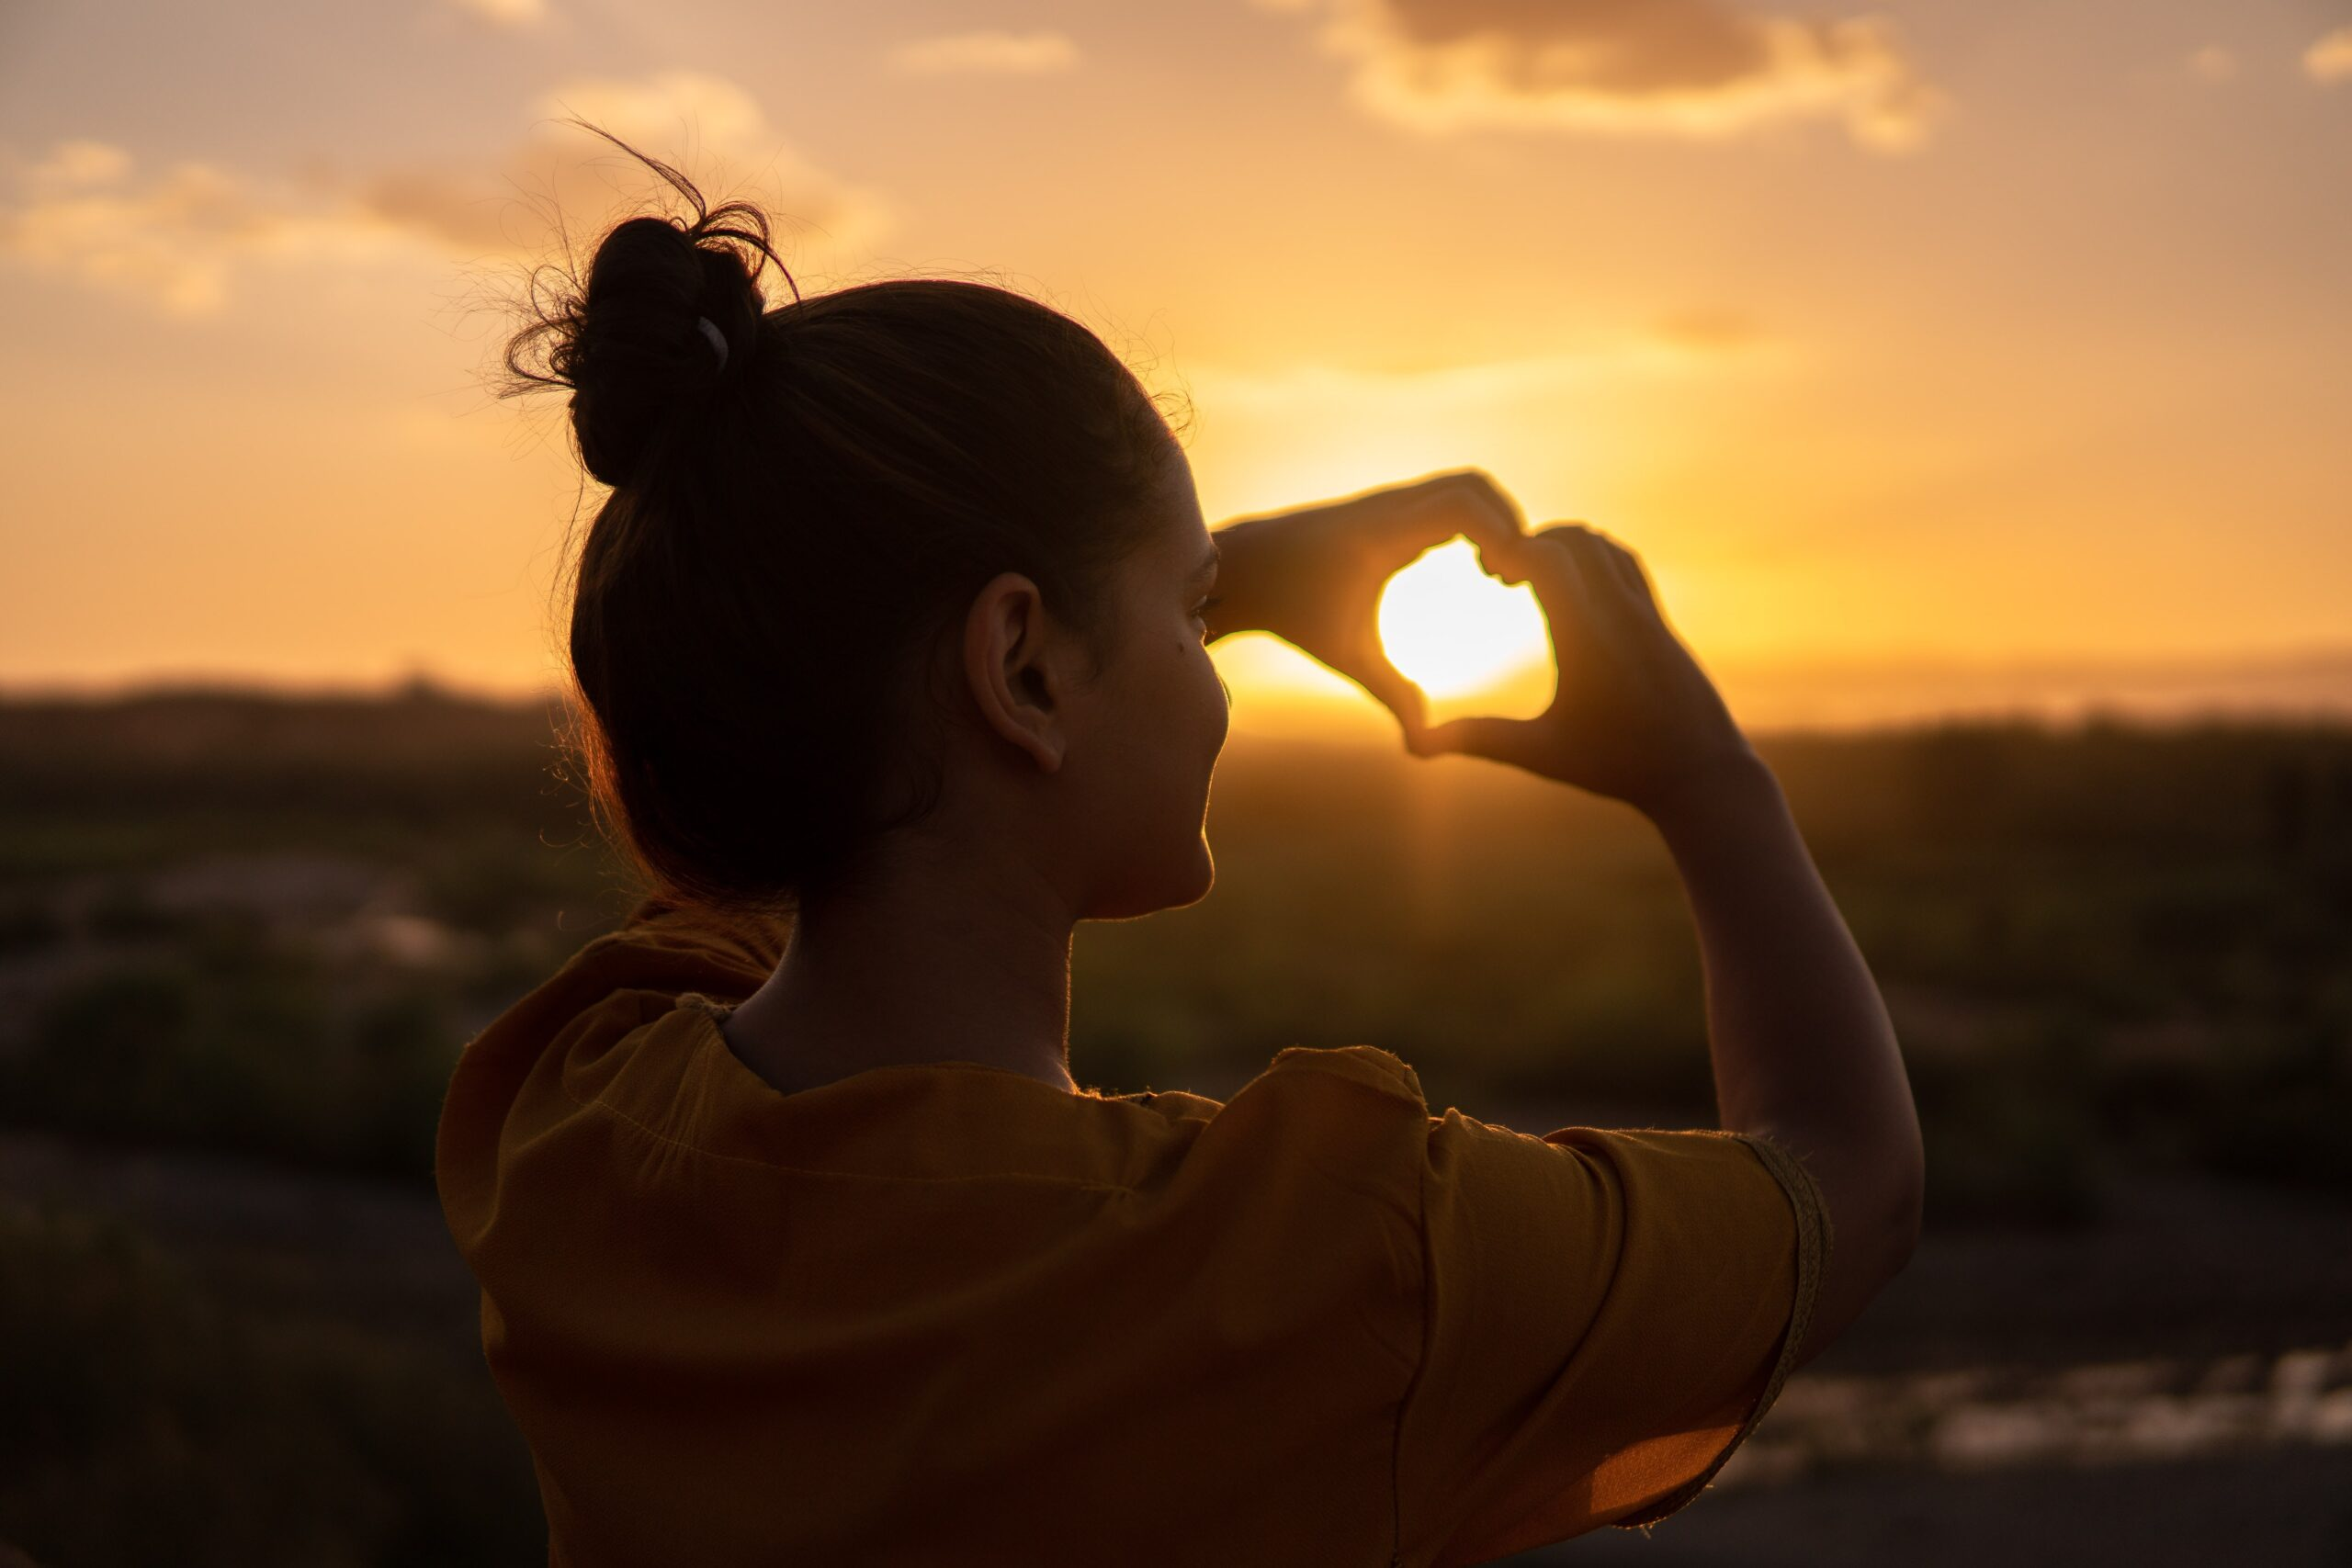 Woman-staring-at-the-sunset-making-a-heart-figure-with-her-hands